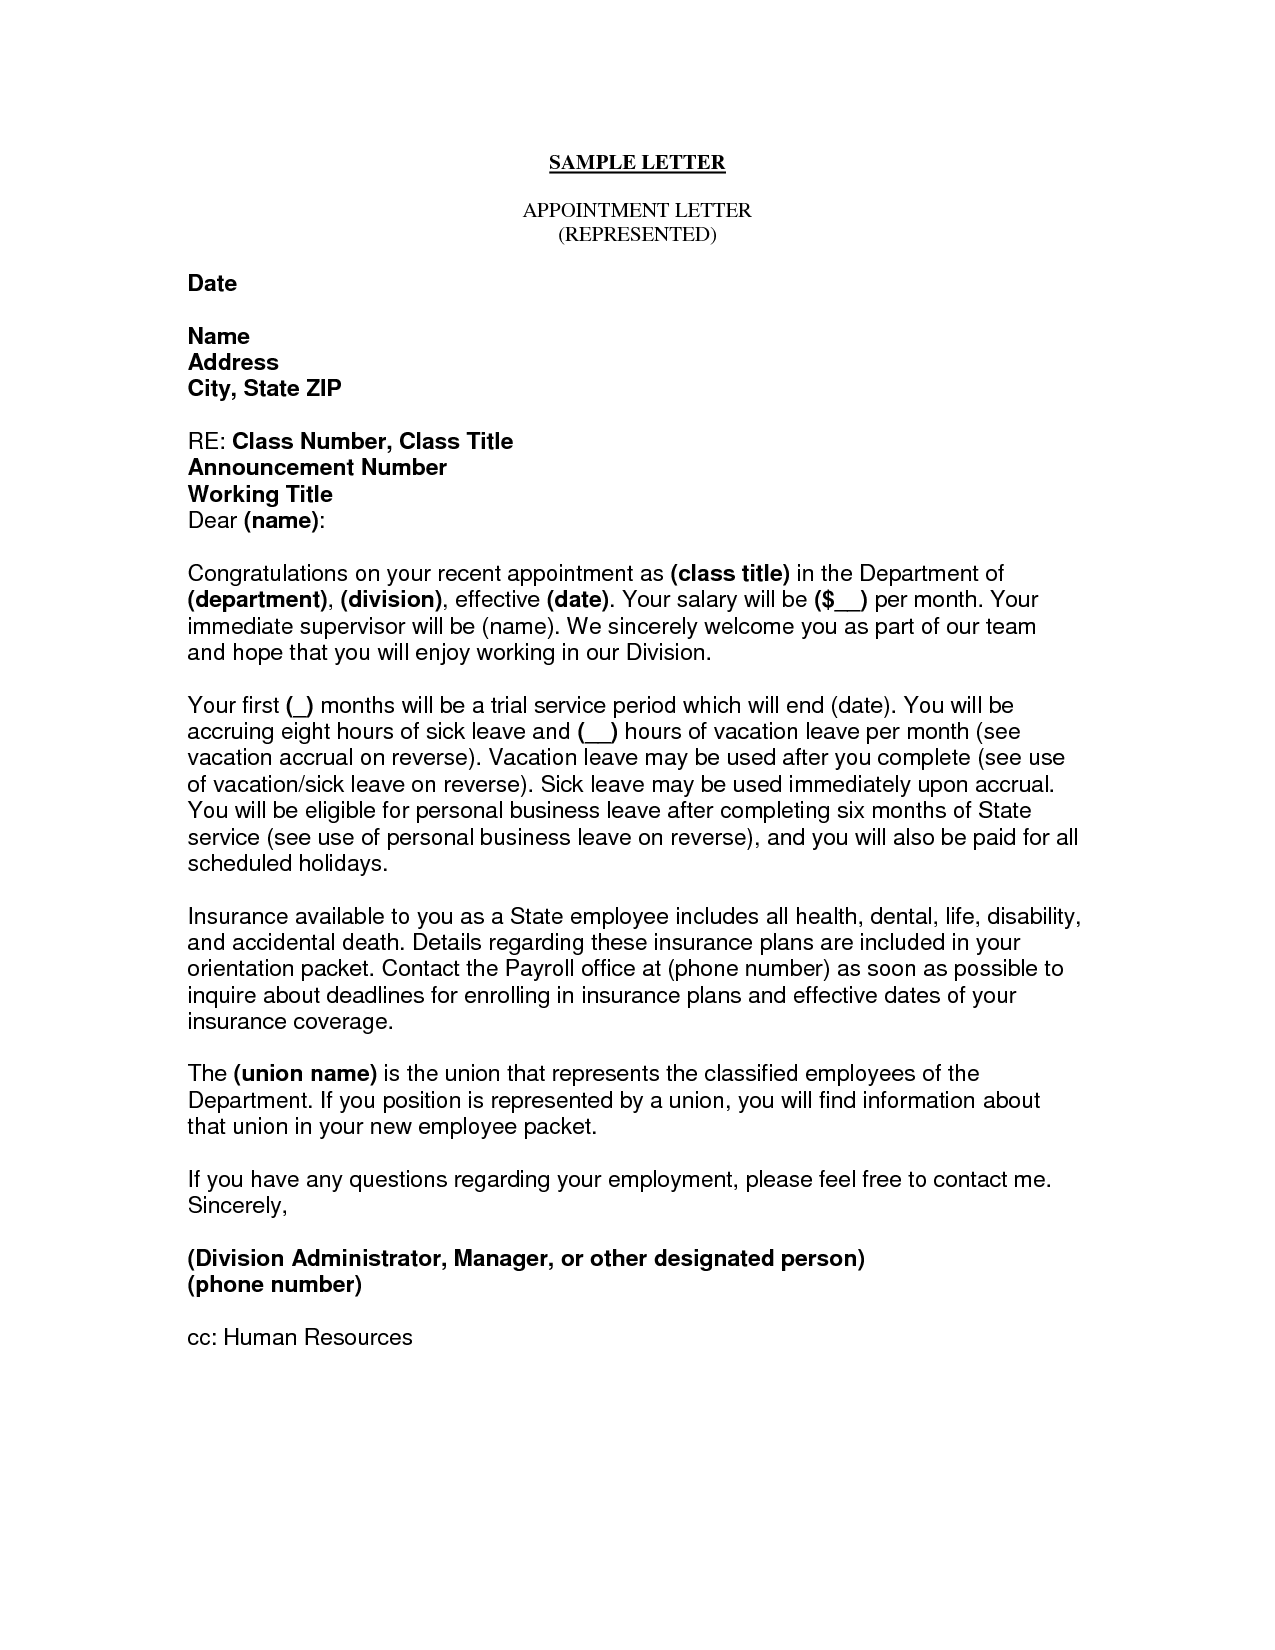 Business appointment letter 28 images business appointment business appointment altavistaventures Choice Image